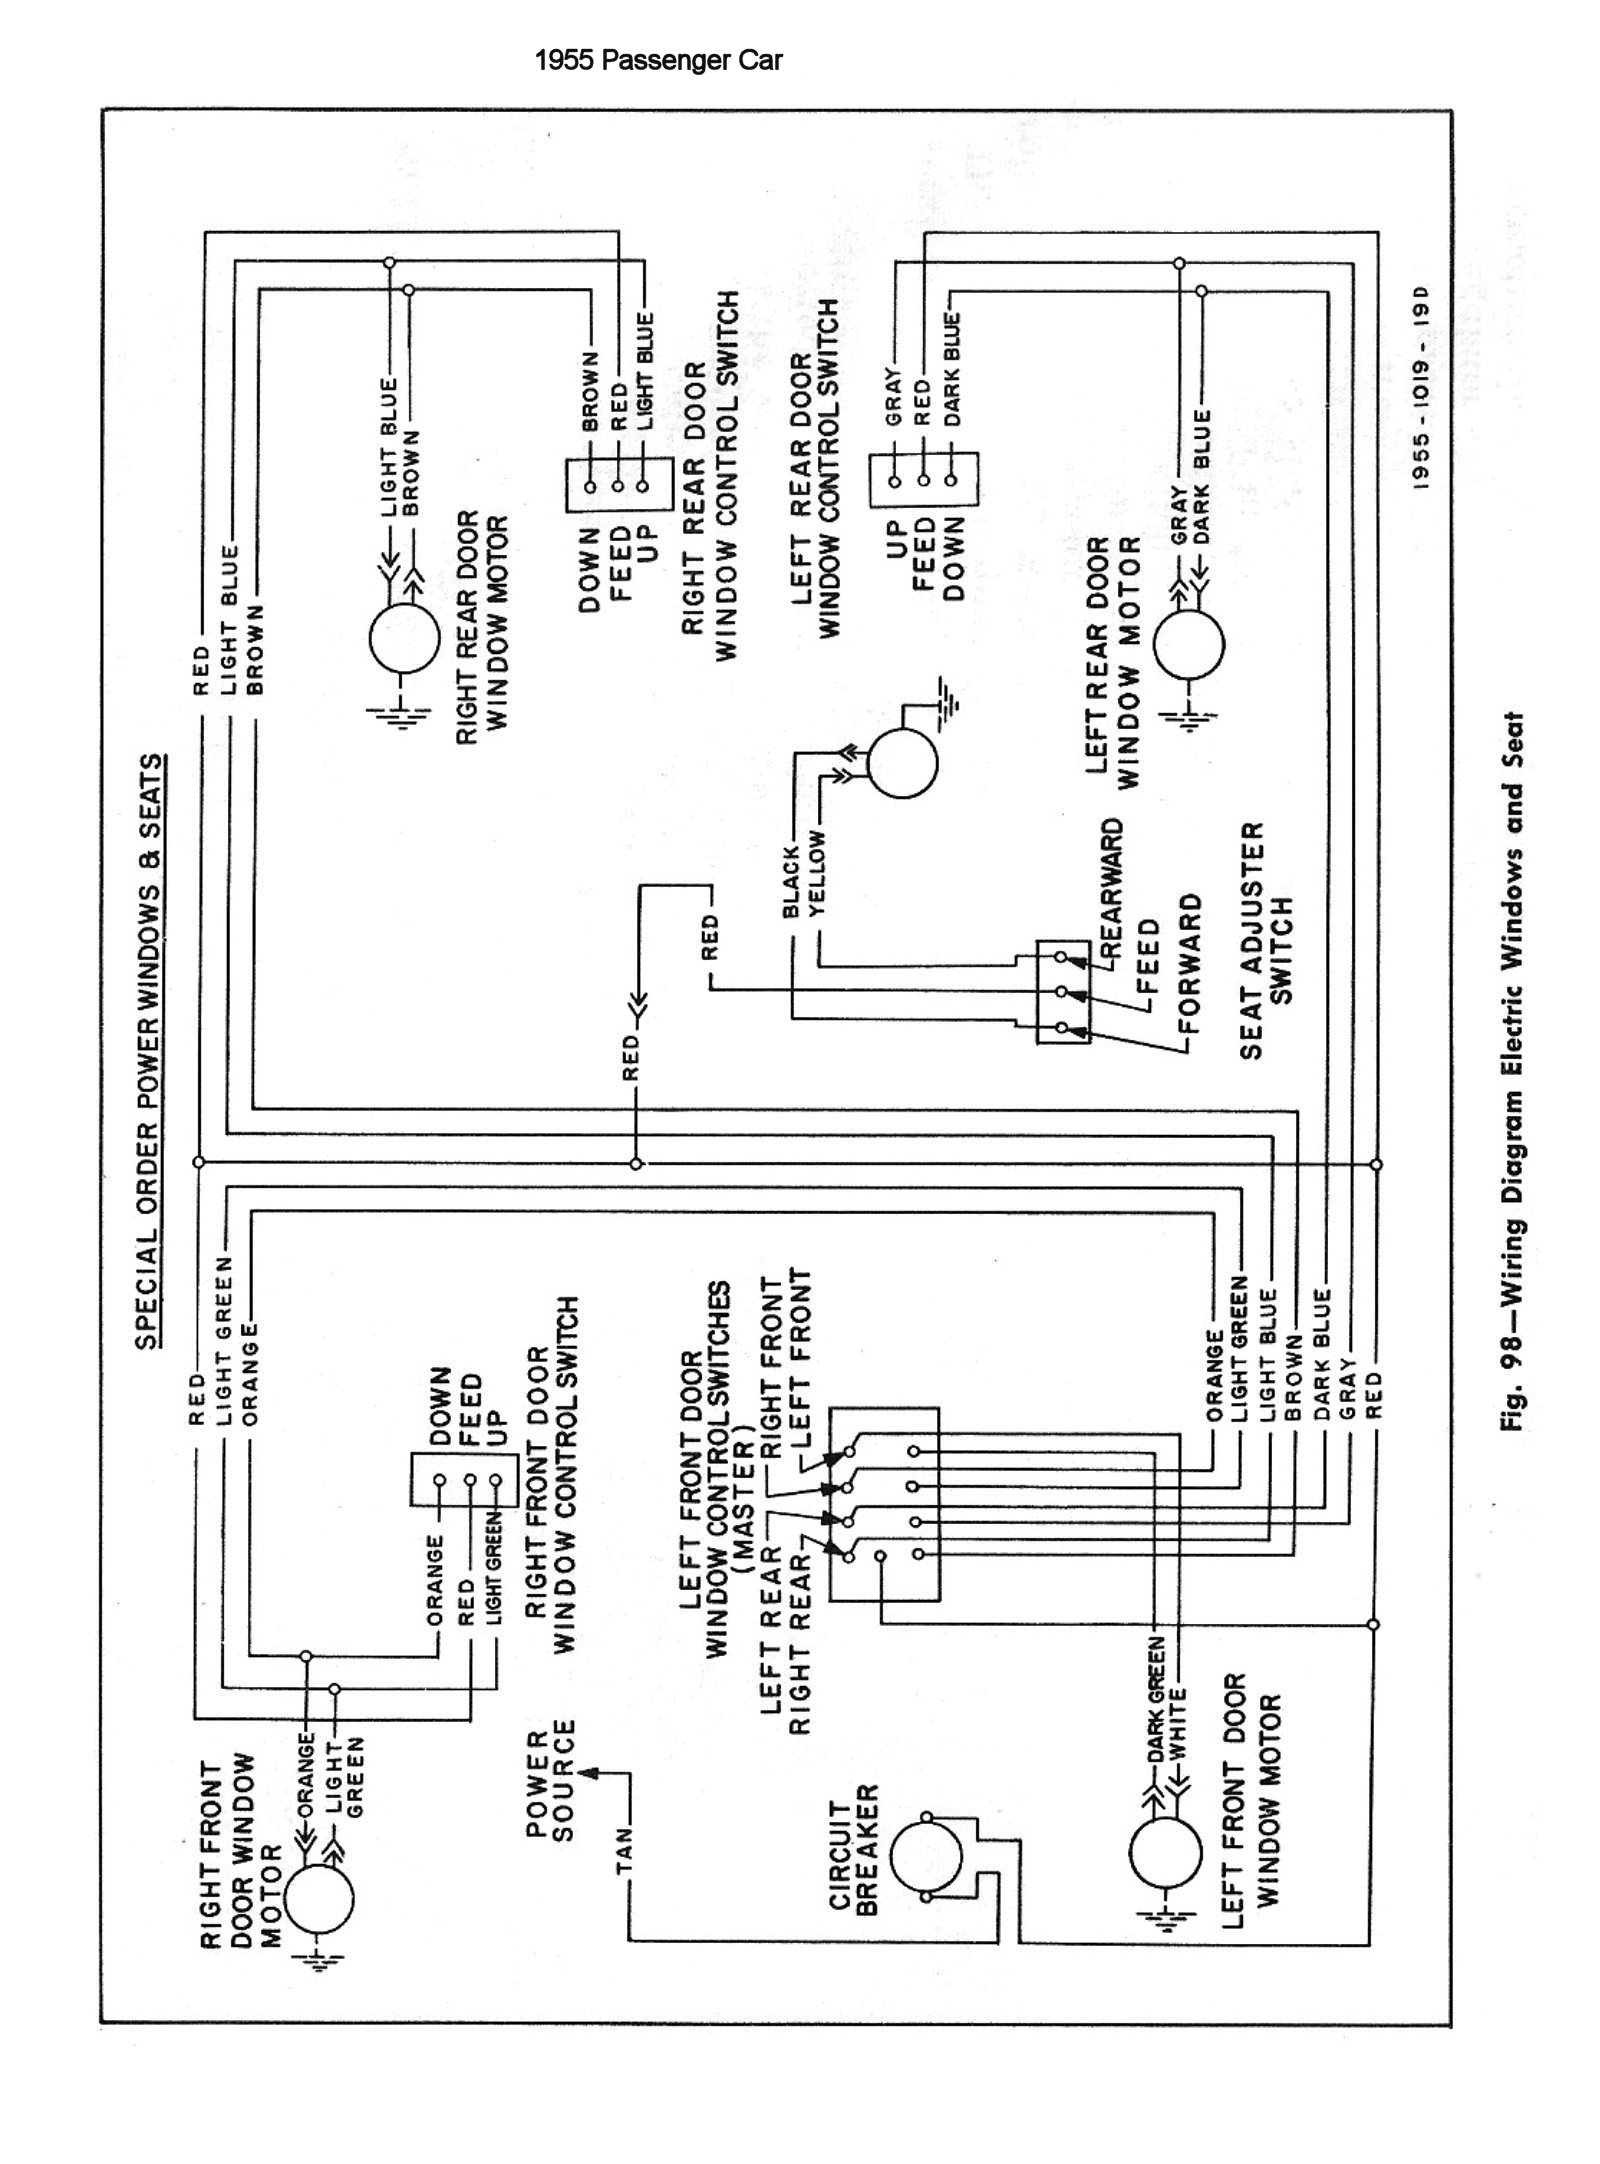 Wiring Diagram For Square D Lighting Contactor